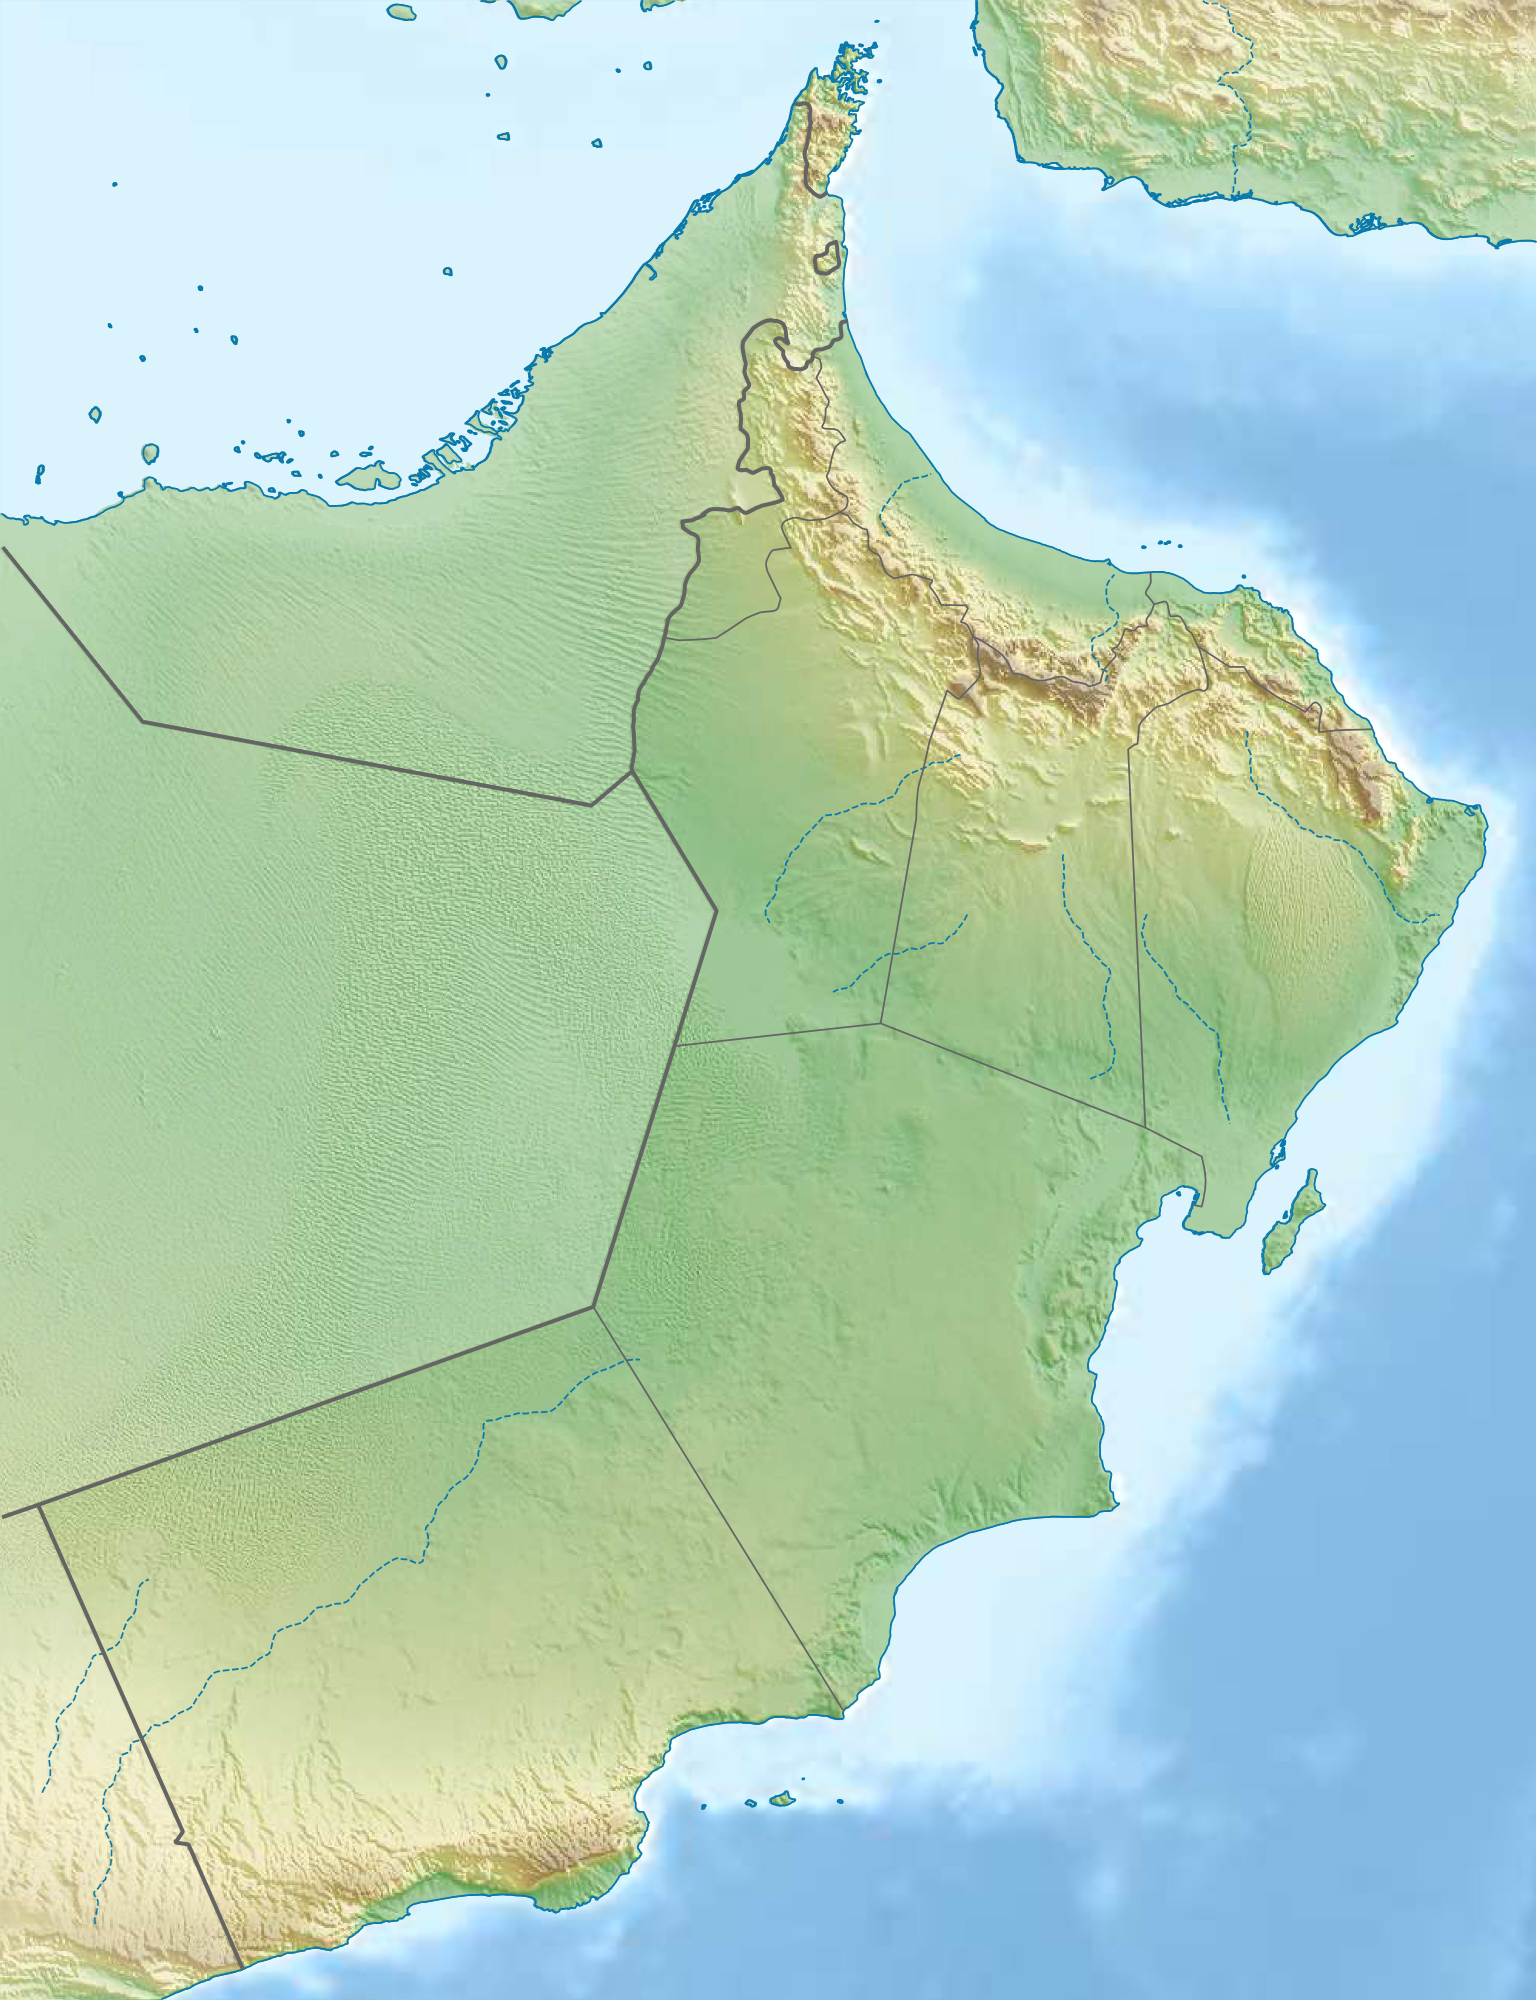 FileOman relief location mapjpg Wikimedia Commons